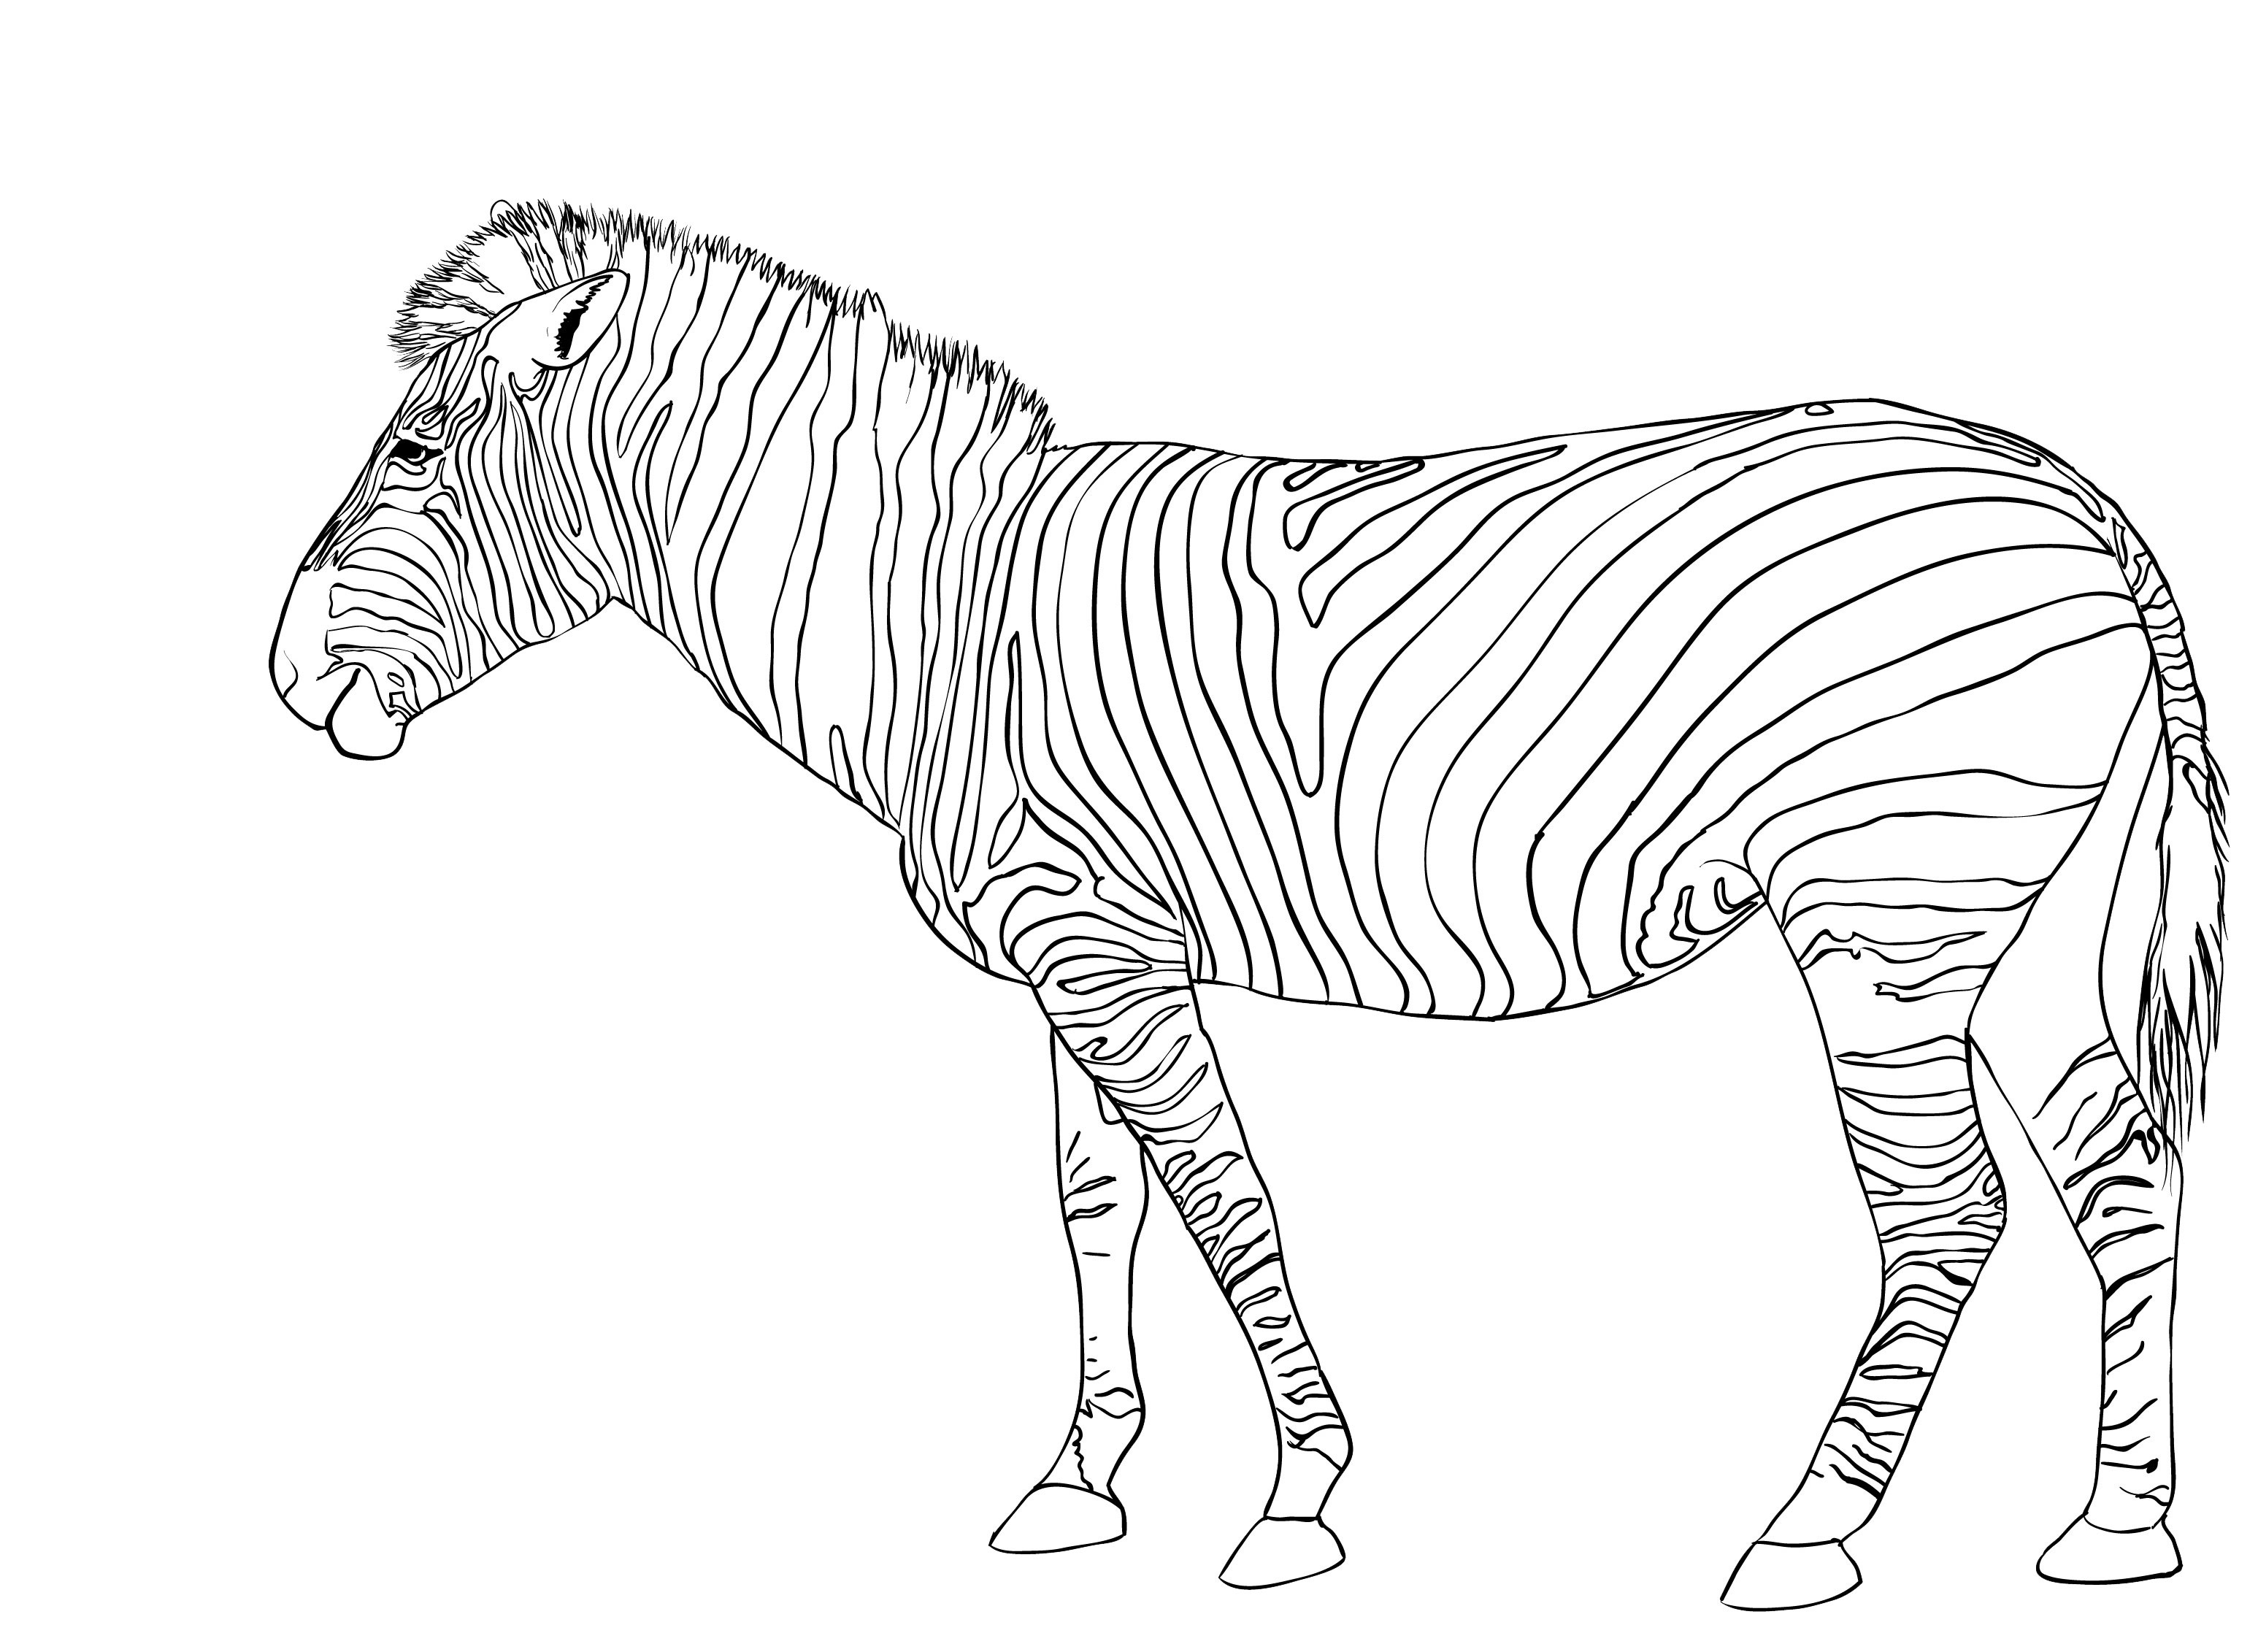 Coloring: Free Printable Zebra Coloring Pages For Kids